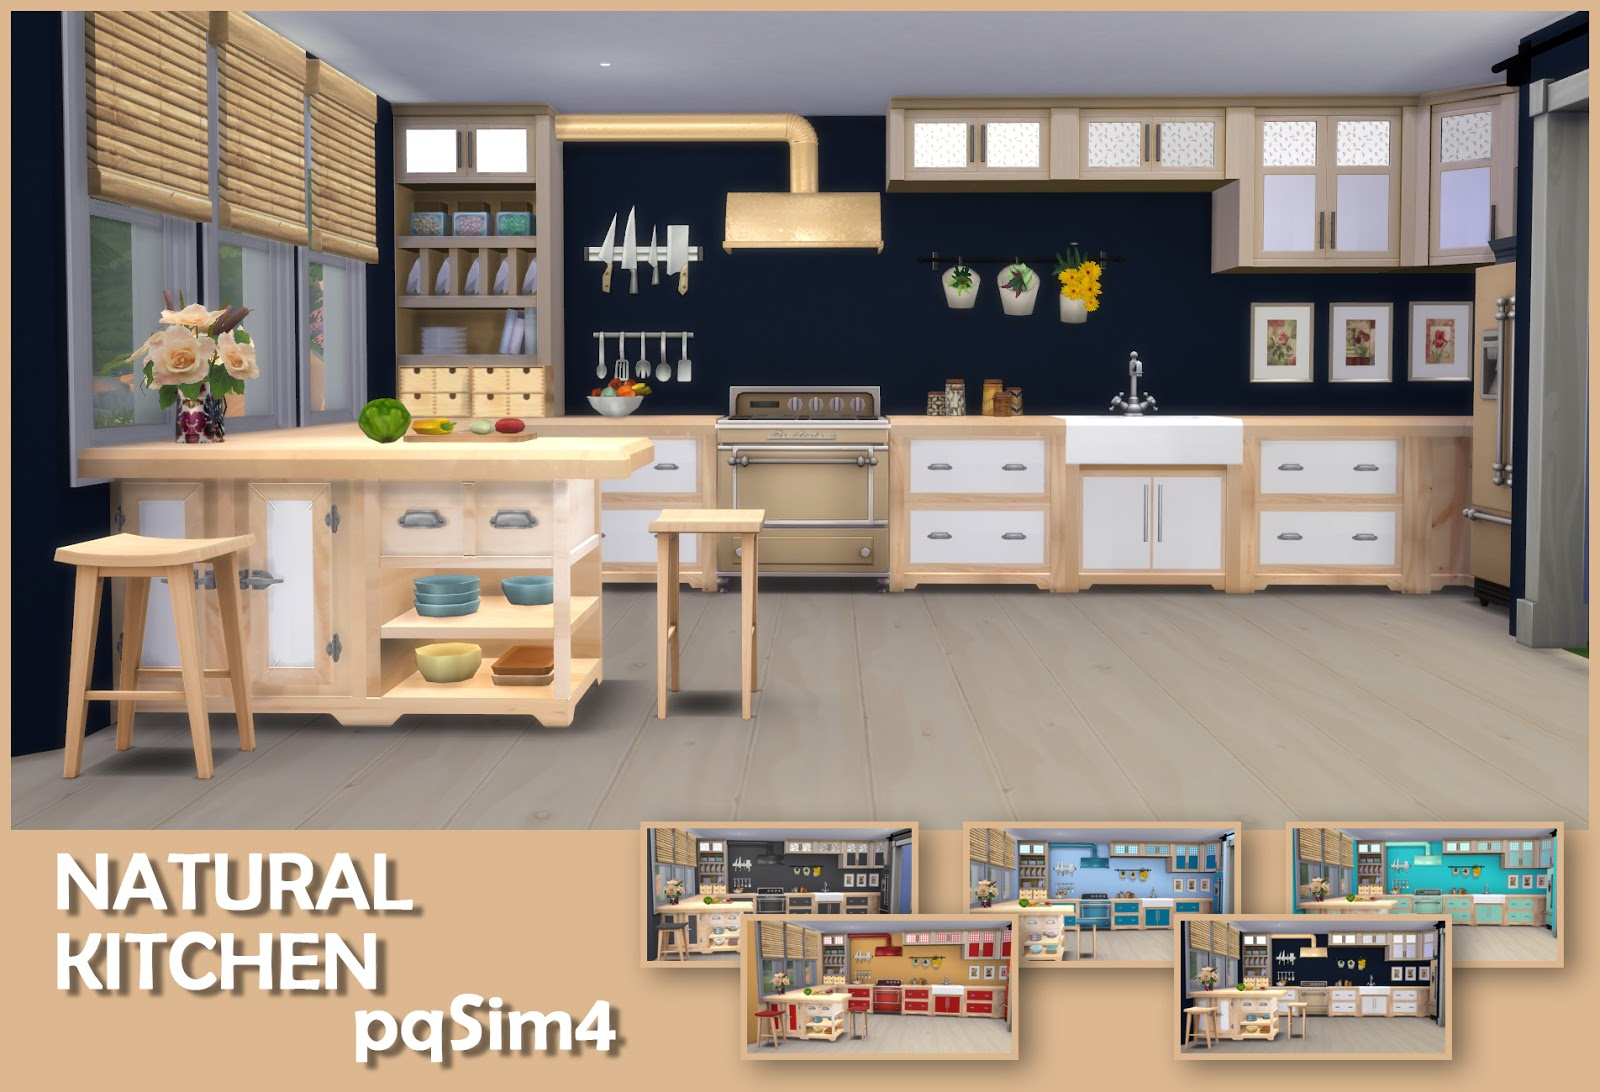 NATURAL KITCHEN  by pqSim4